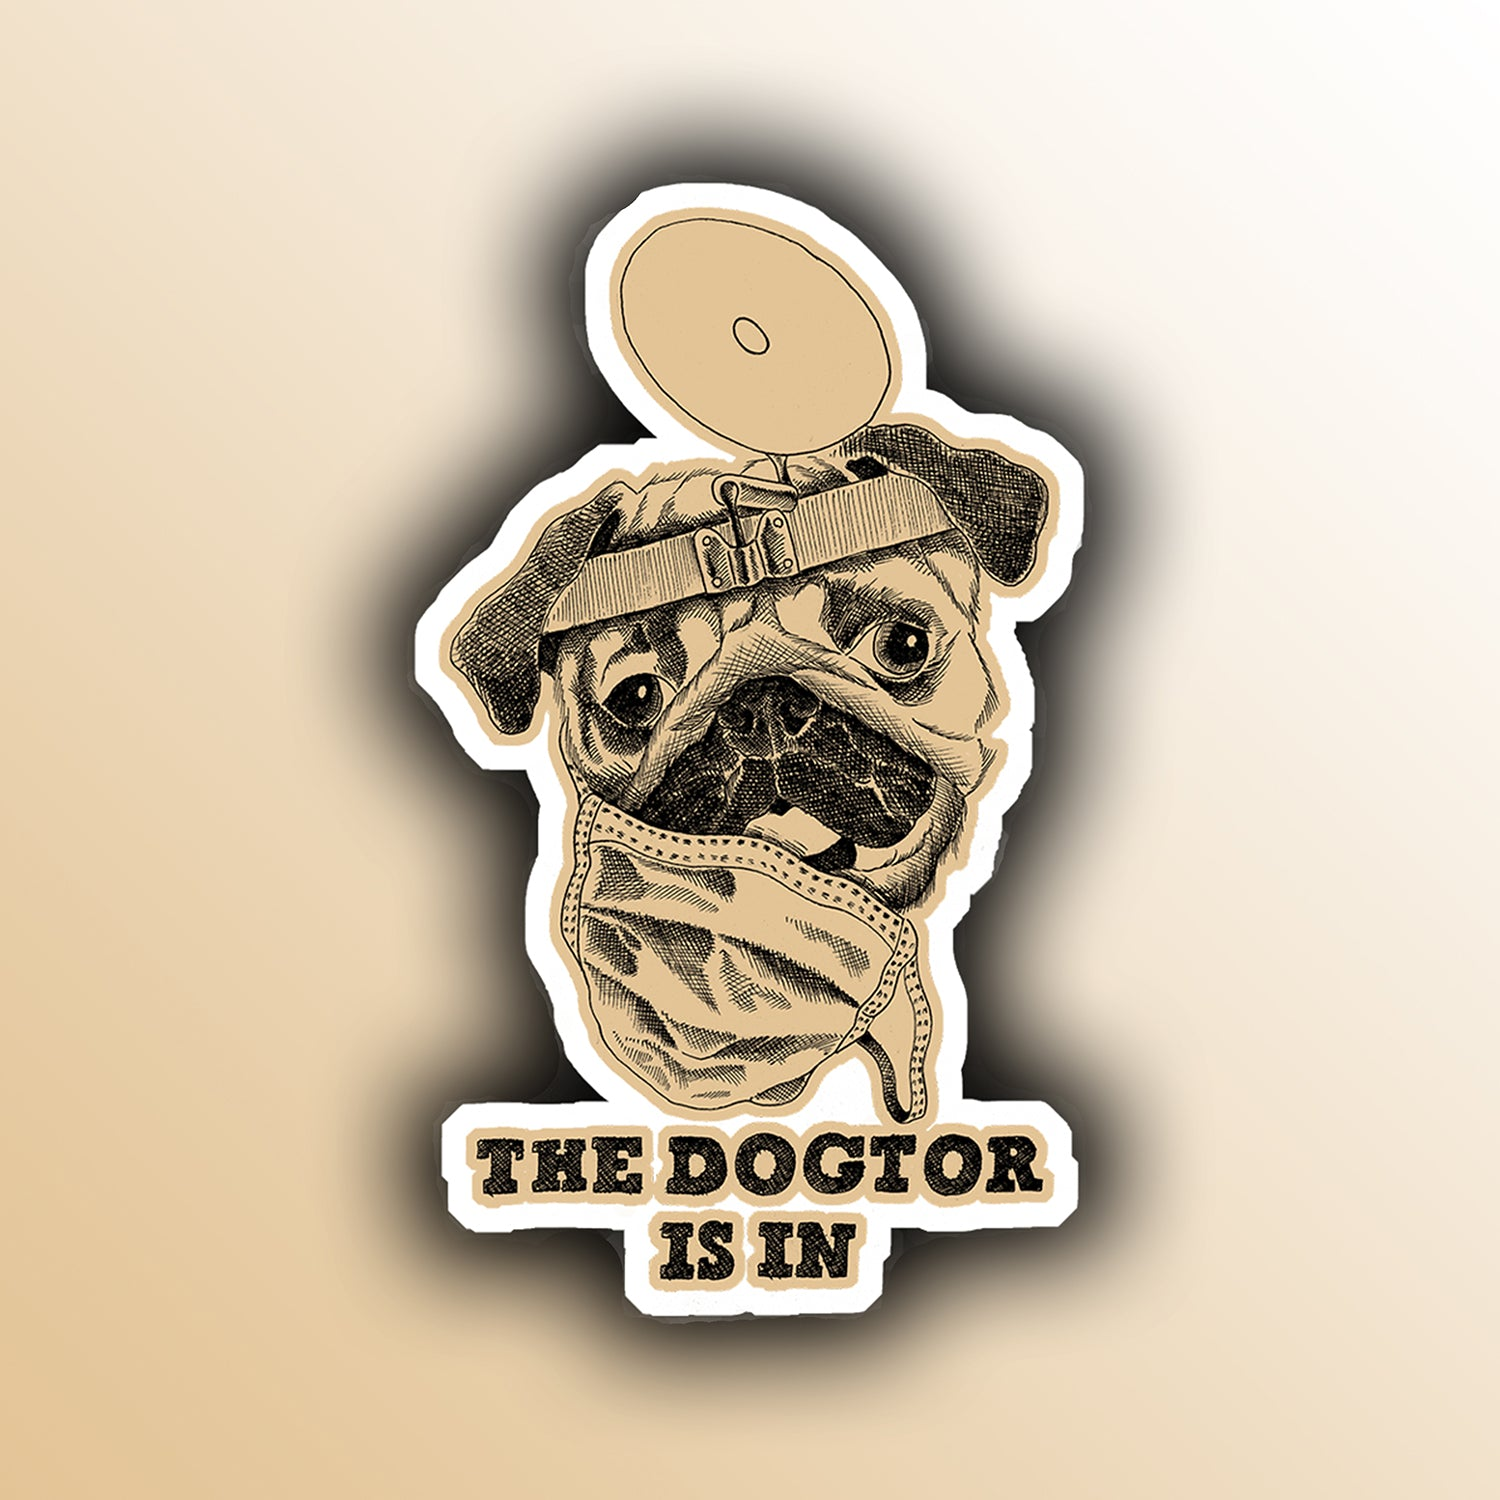 funny sticker with a doctor pug dog pun